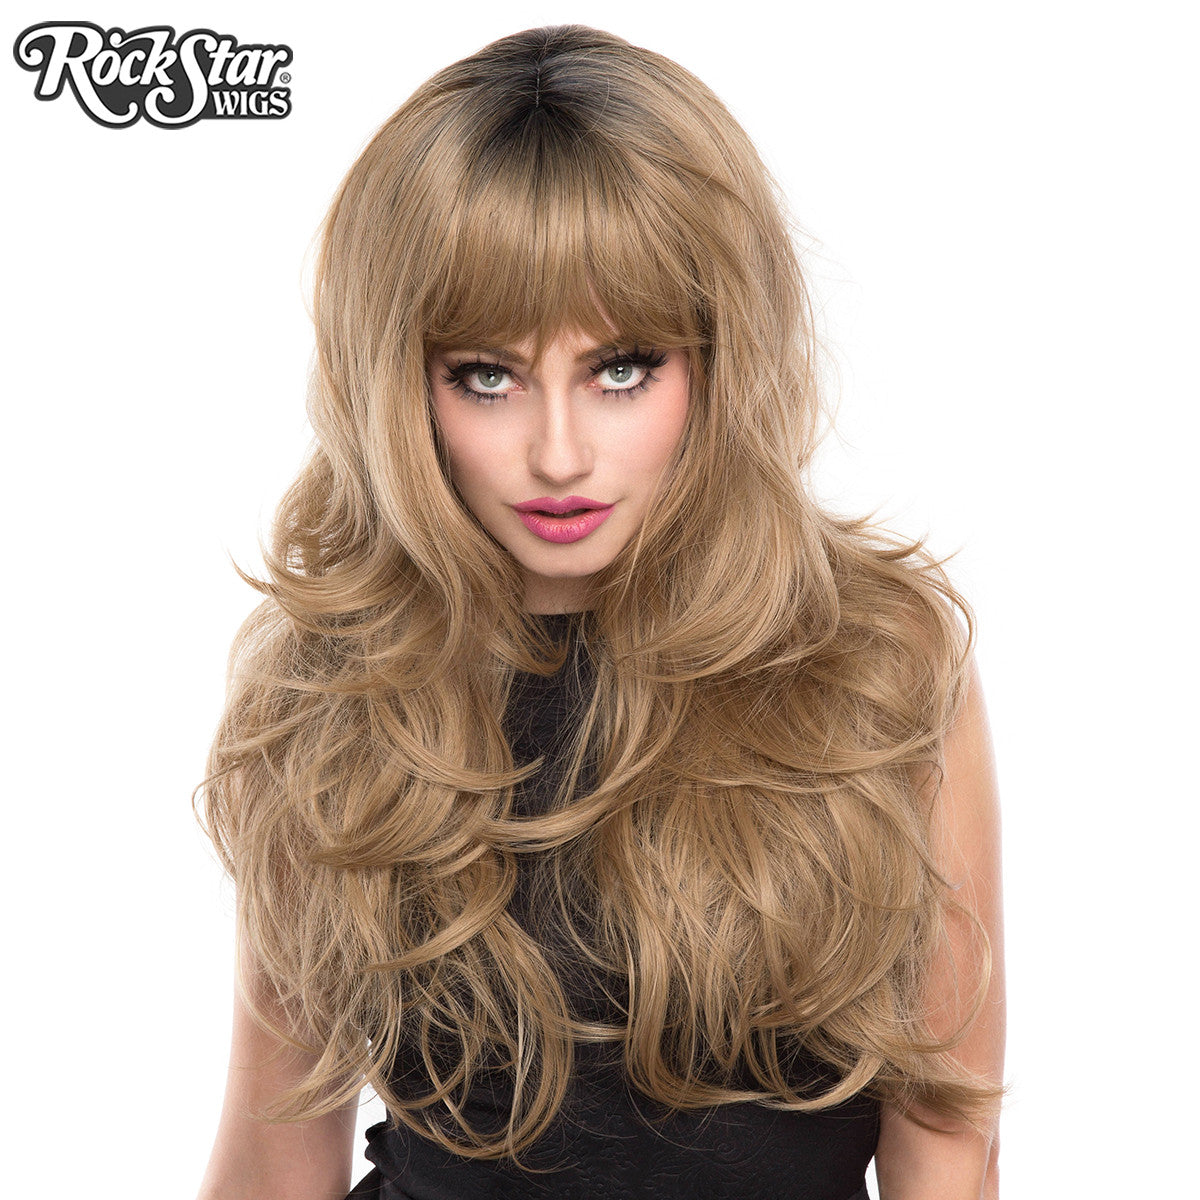 RockStar Wigs® <br> Uptown Girl™ Collection - Ladies Who Tea 00230